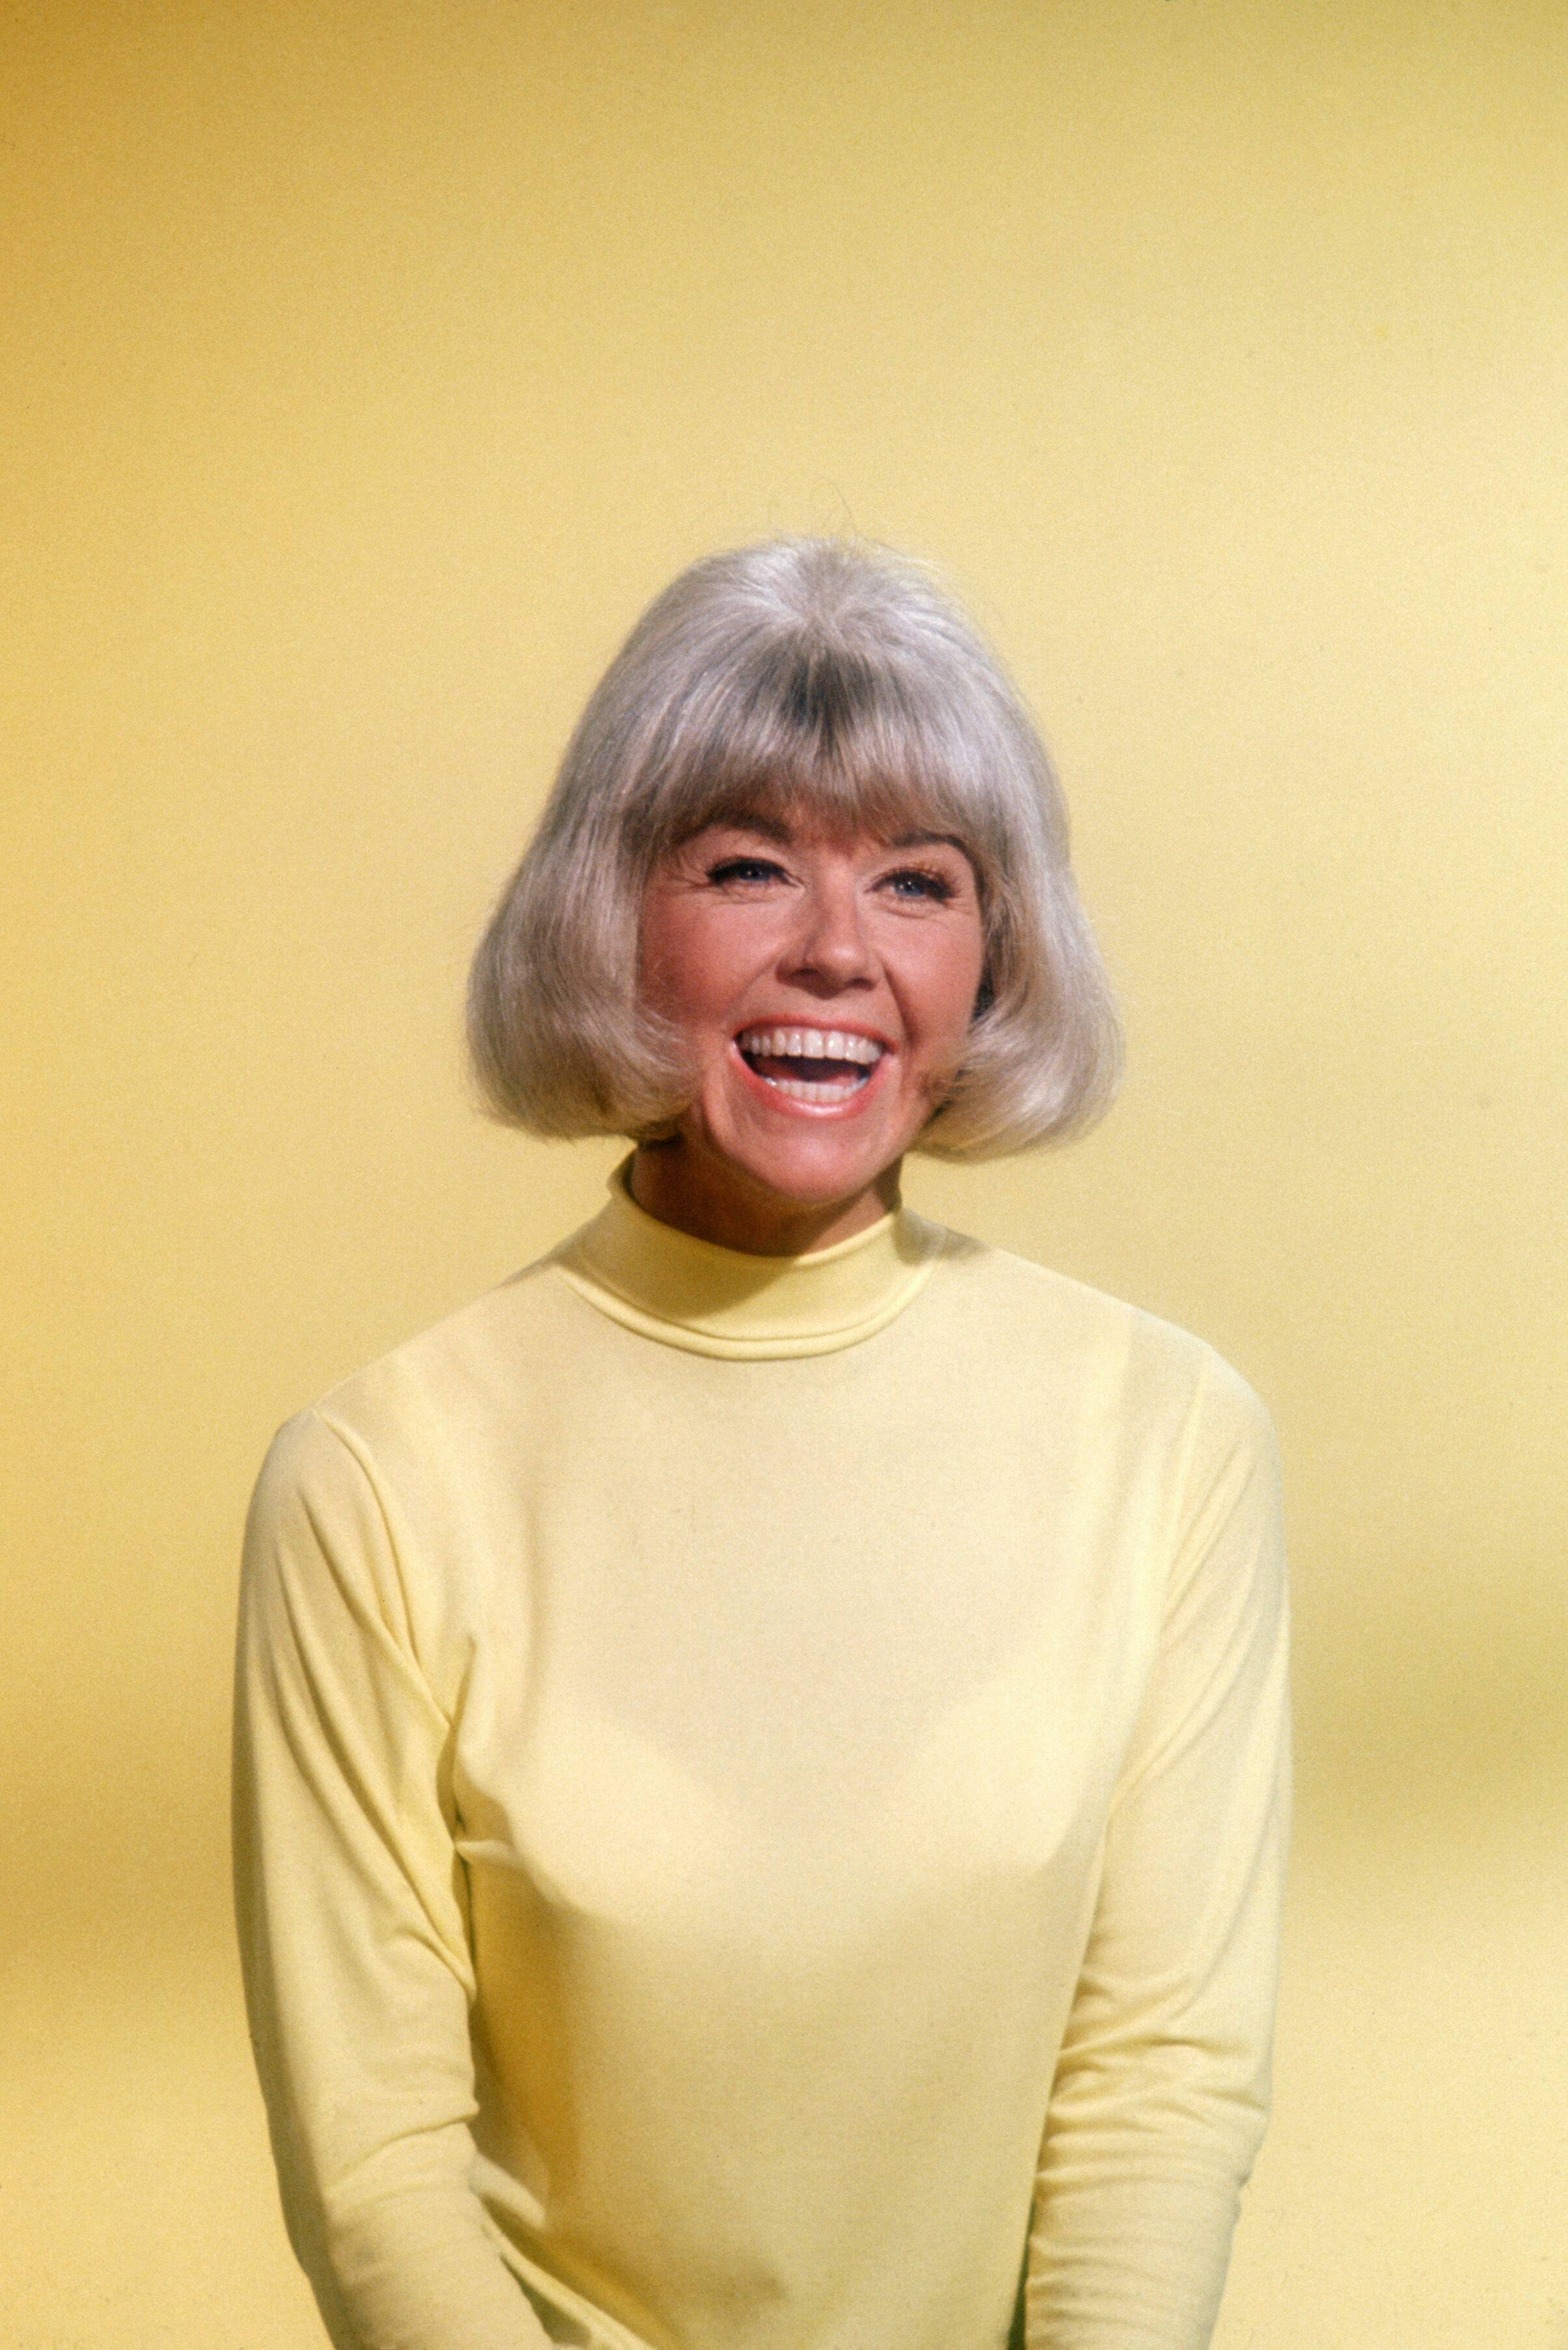 Doris Day at a Photoshoot | Source: Getty Images